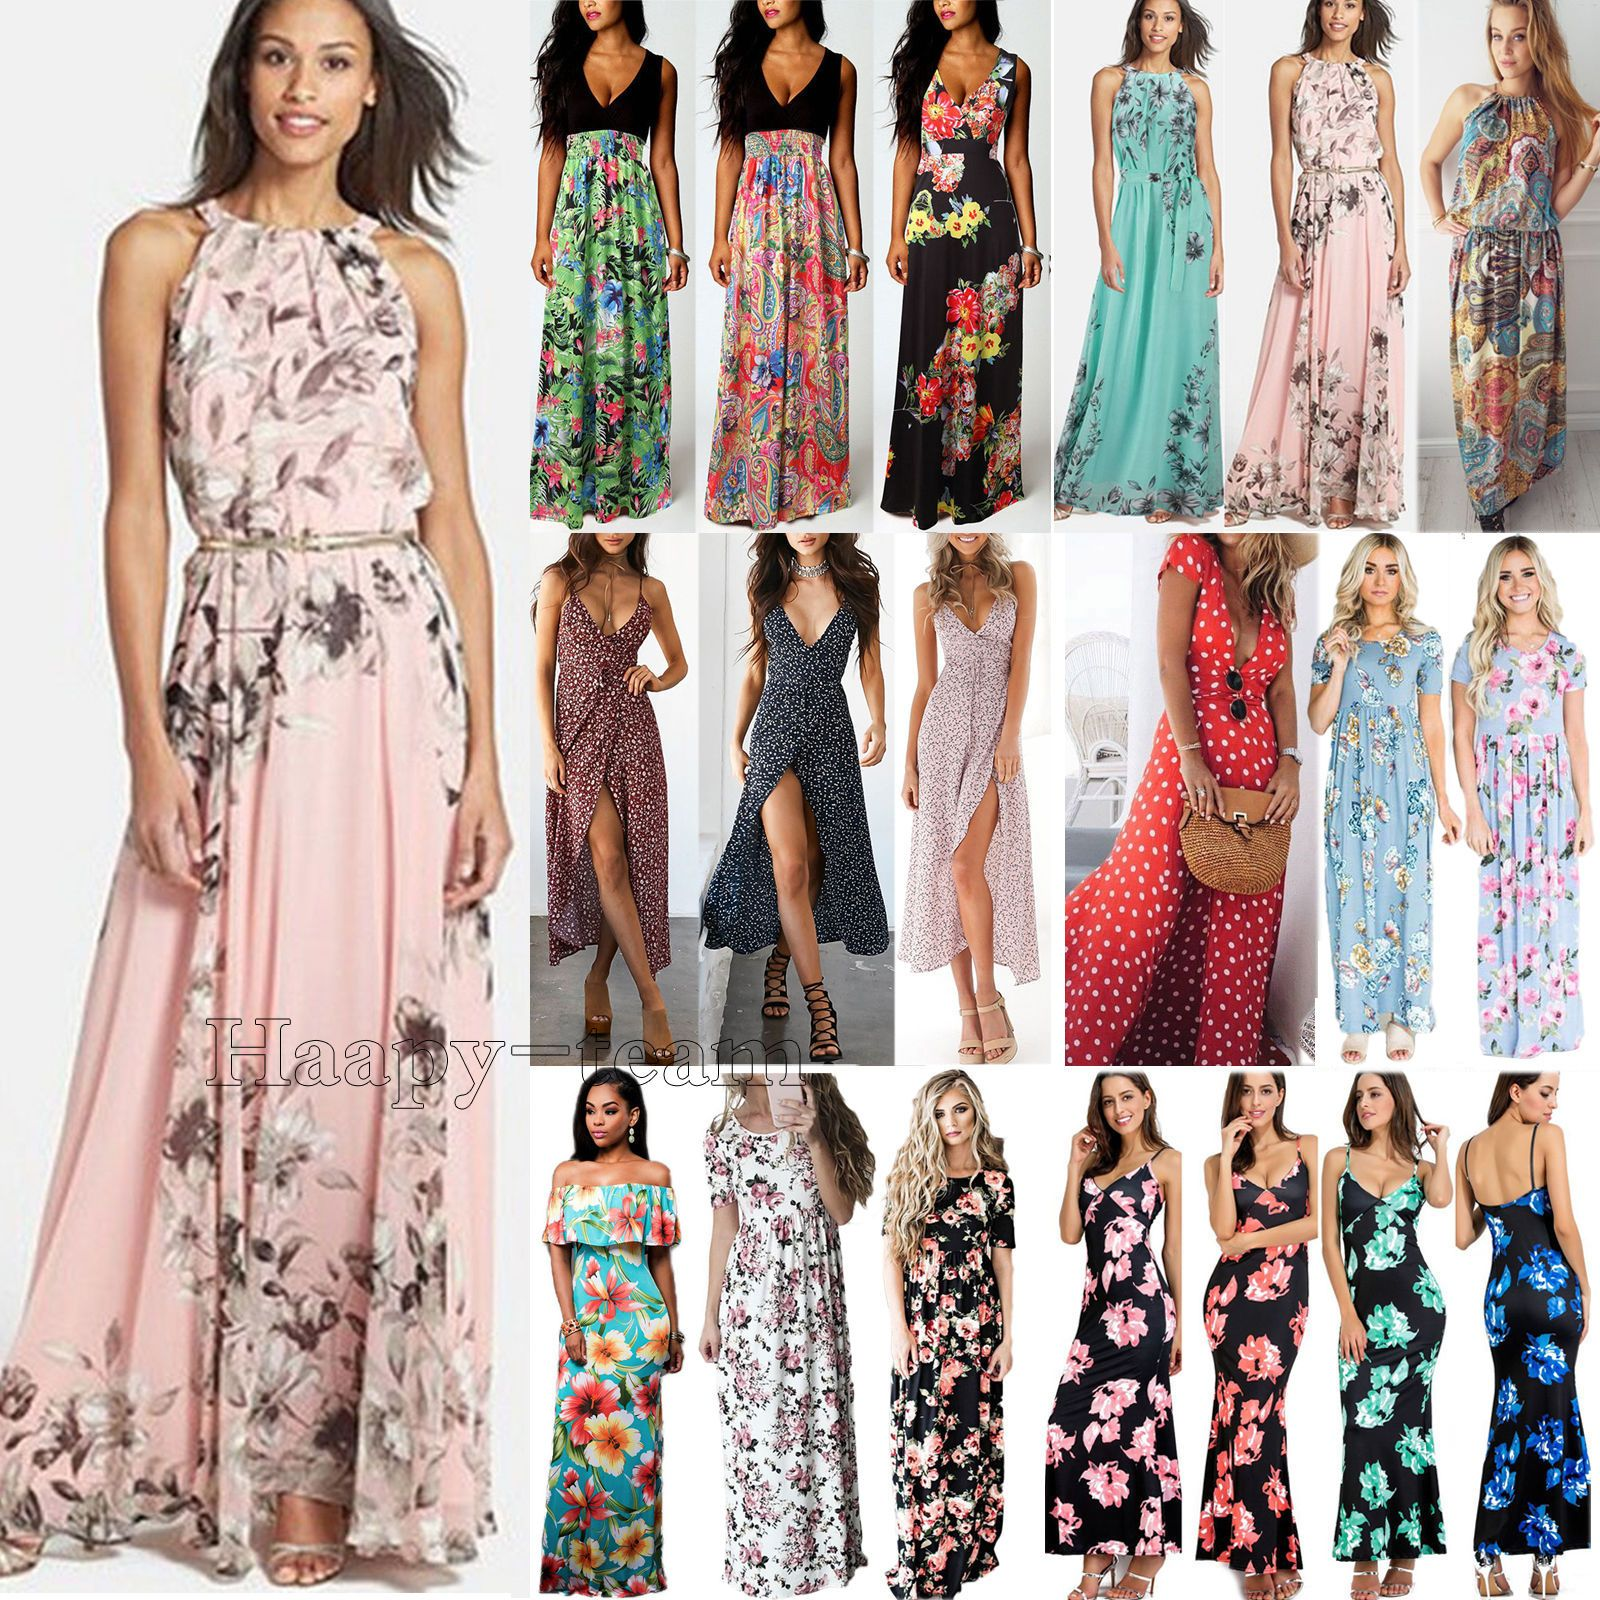 3489a10489 Women Boho Floral Long Maxi Dress Cocktail Party Evening Summer Beach  Sundress